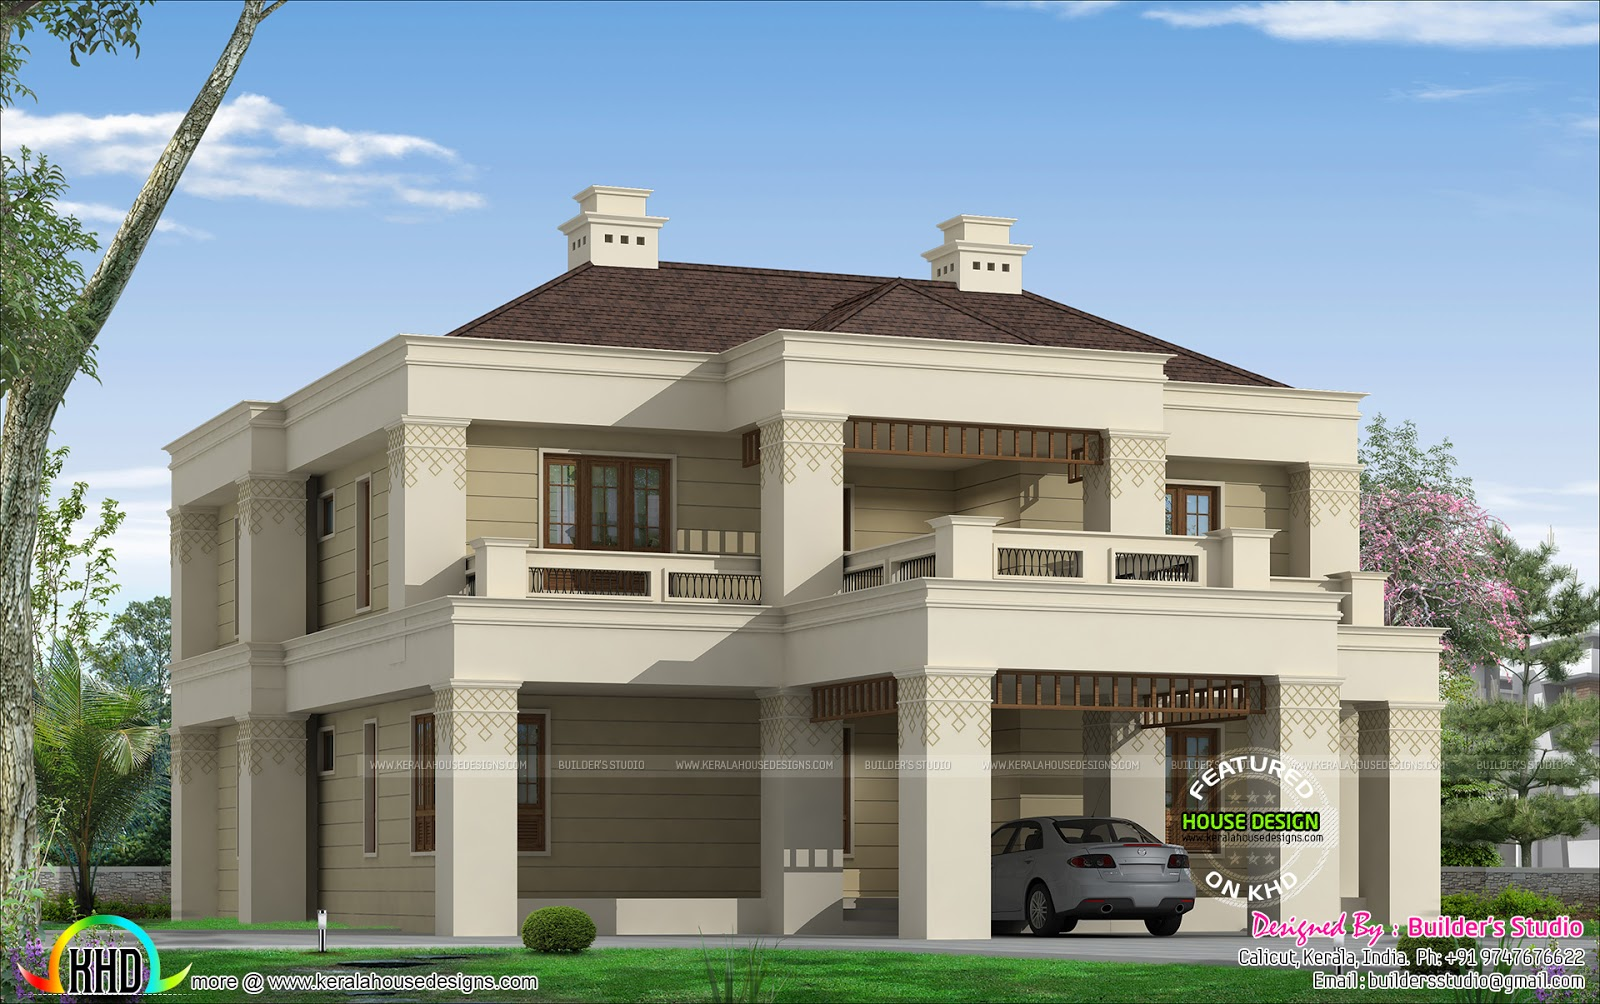 Kerala colonial home kerala home design and floor plans for Colonial style house plans kerala